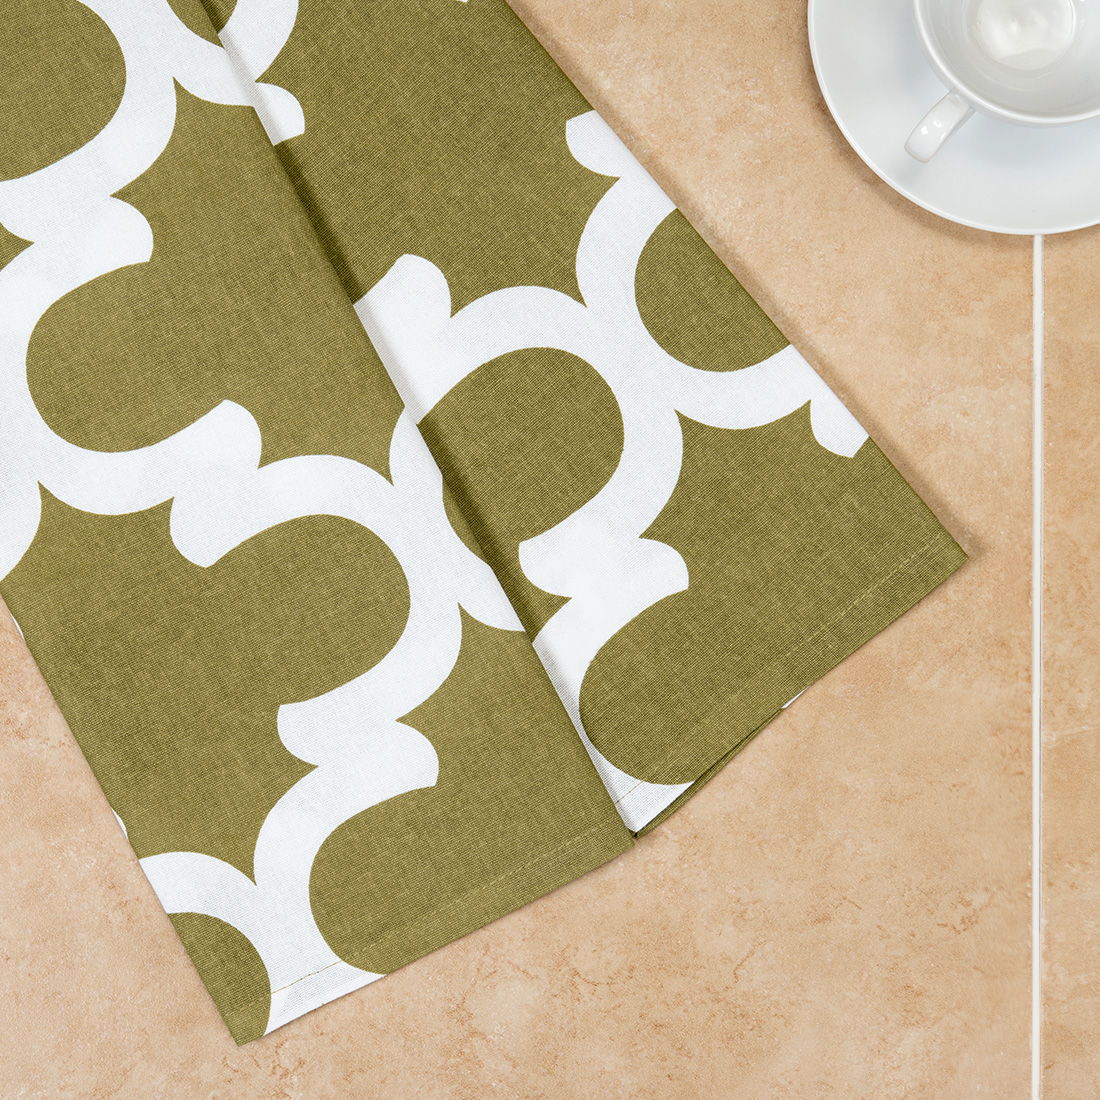 18 x 28 in. Olive Green & White Trellis Kitchen Towels 2 pack by